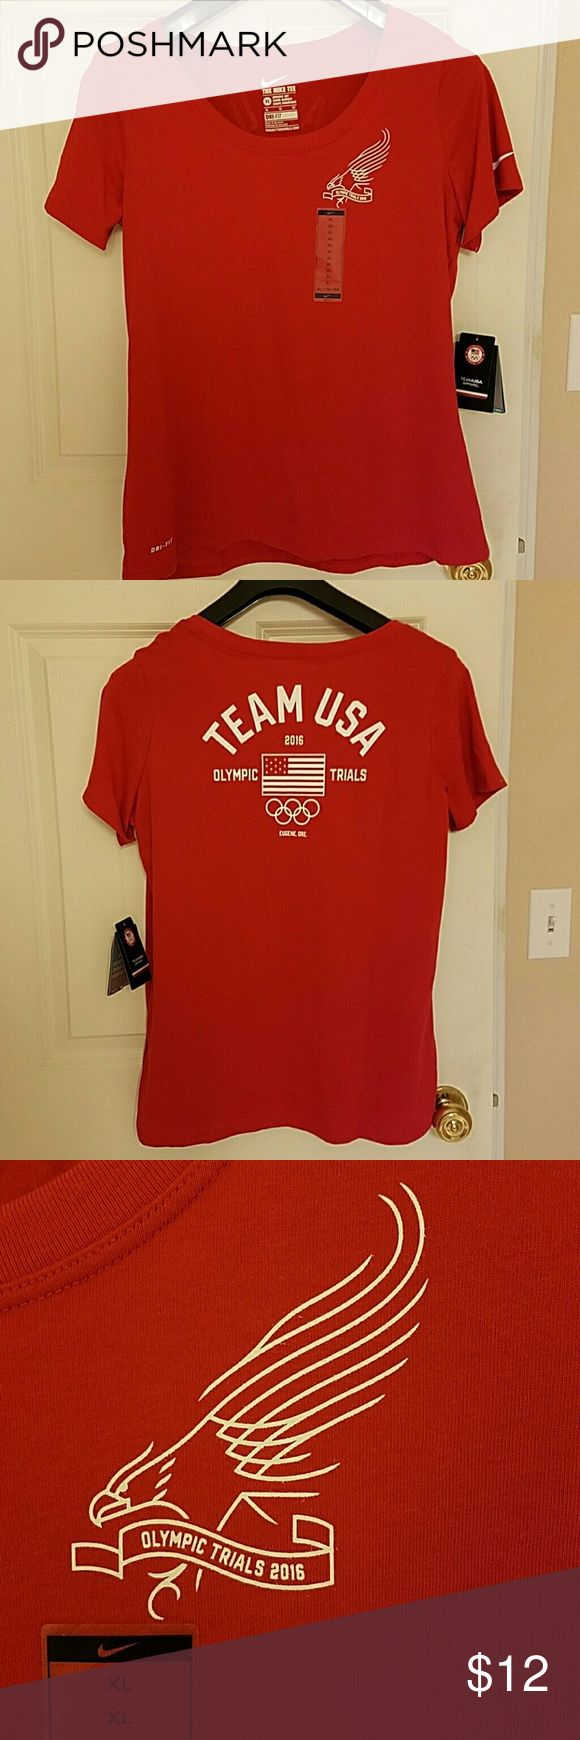 "Olympic Trials 2016 Nike Dri-fit Tee NWT. Olympic Trials 2016 Nike Dri-fit Tee. Scoop neck.  Athletic Cut. 20"" from armpit to armpit; 27"" from shoulder to hem.   No Trades. Lowball offers will be ignored or declined. Thank you. Nike Tops Tees - Short Sleeve"